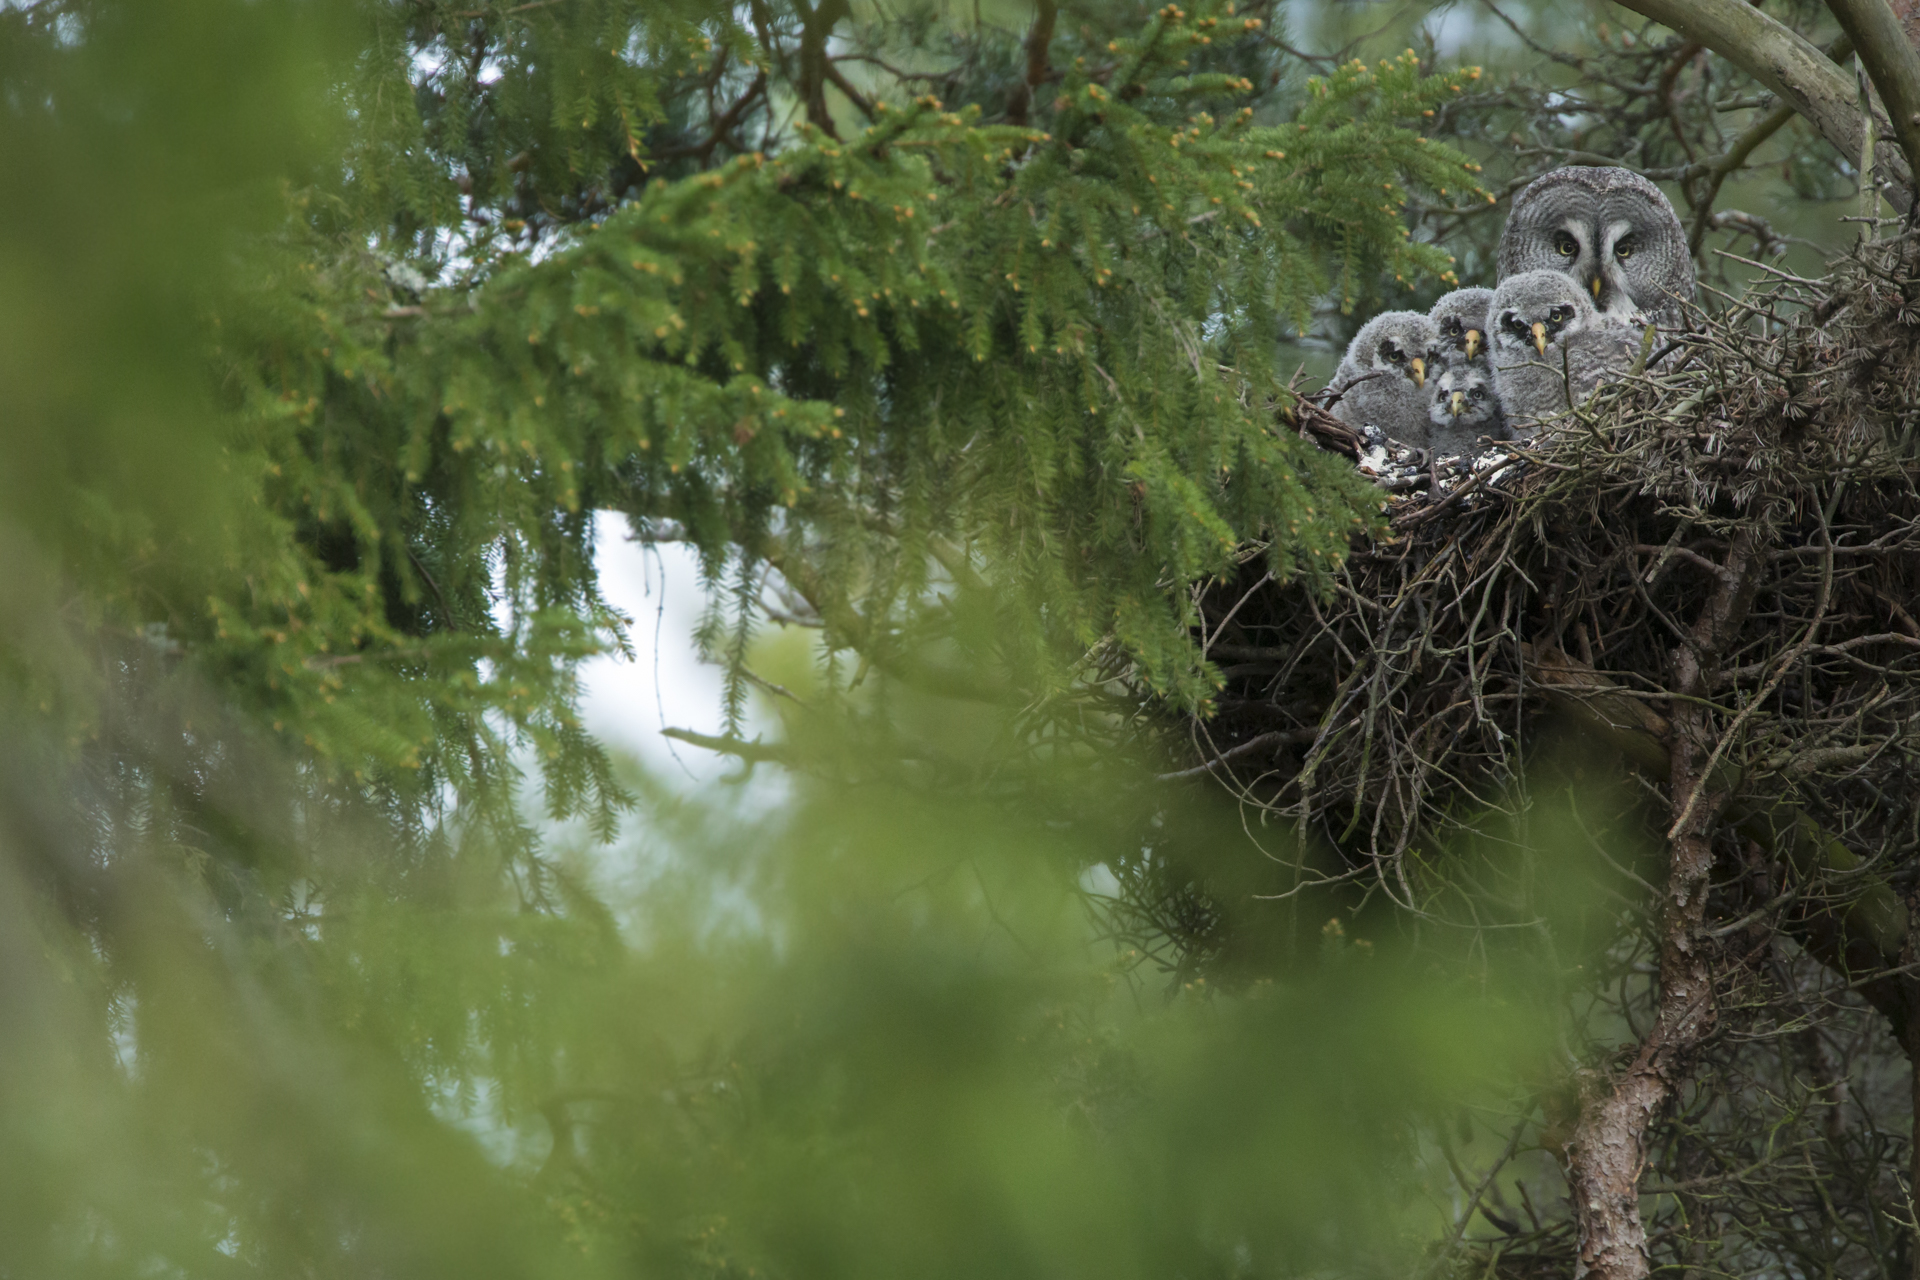 A family of great grey owls at the nest. Finland.